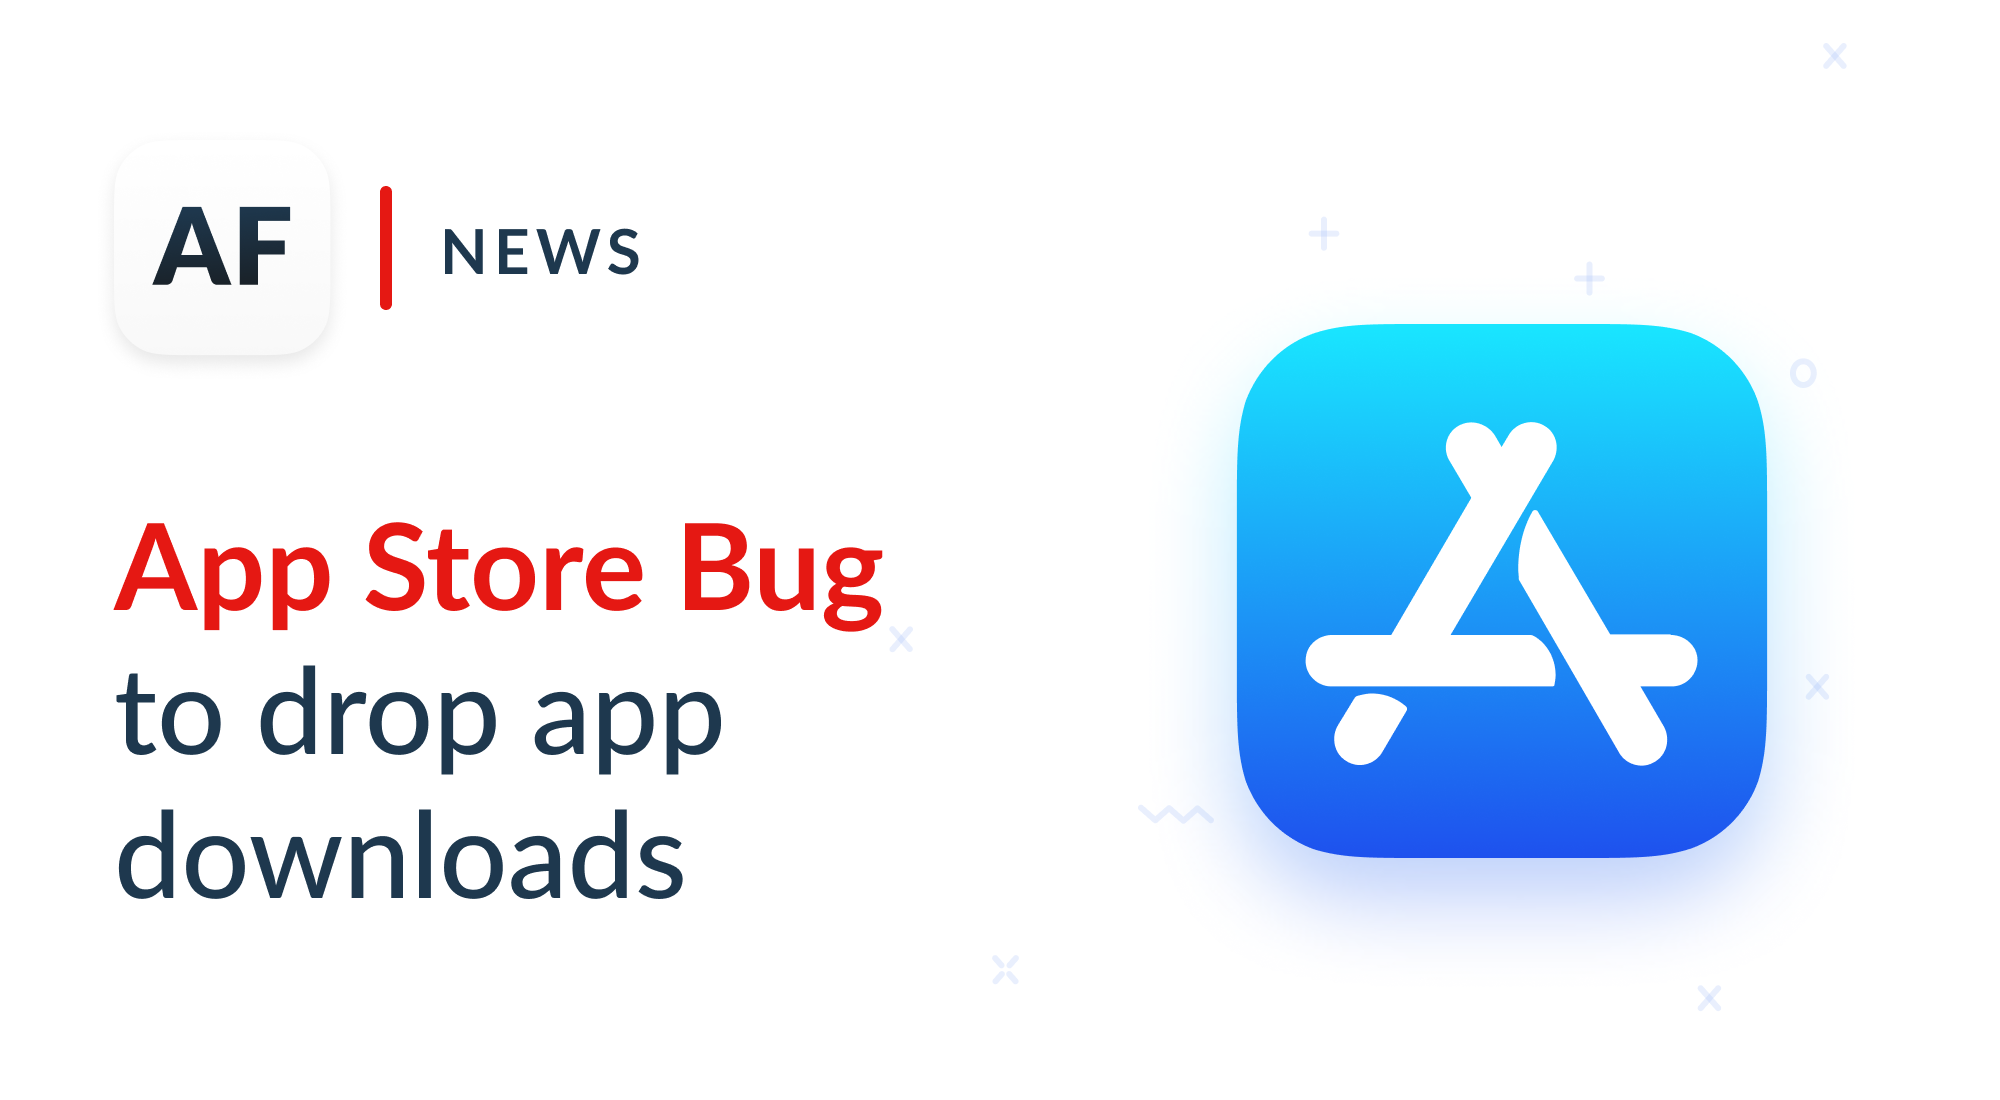 A bug in the App Store drops apps' downloads by half